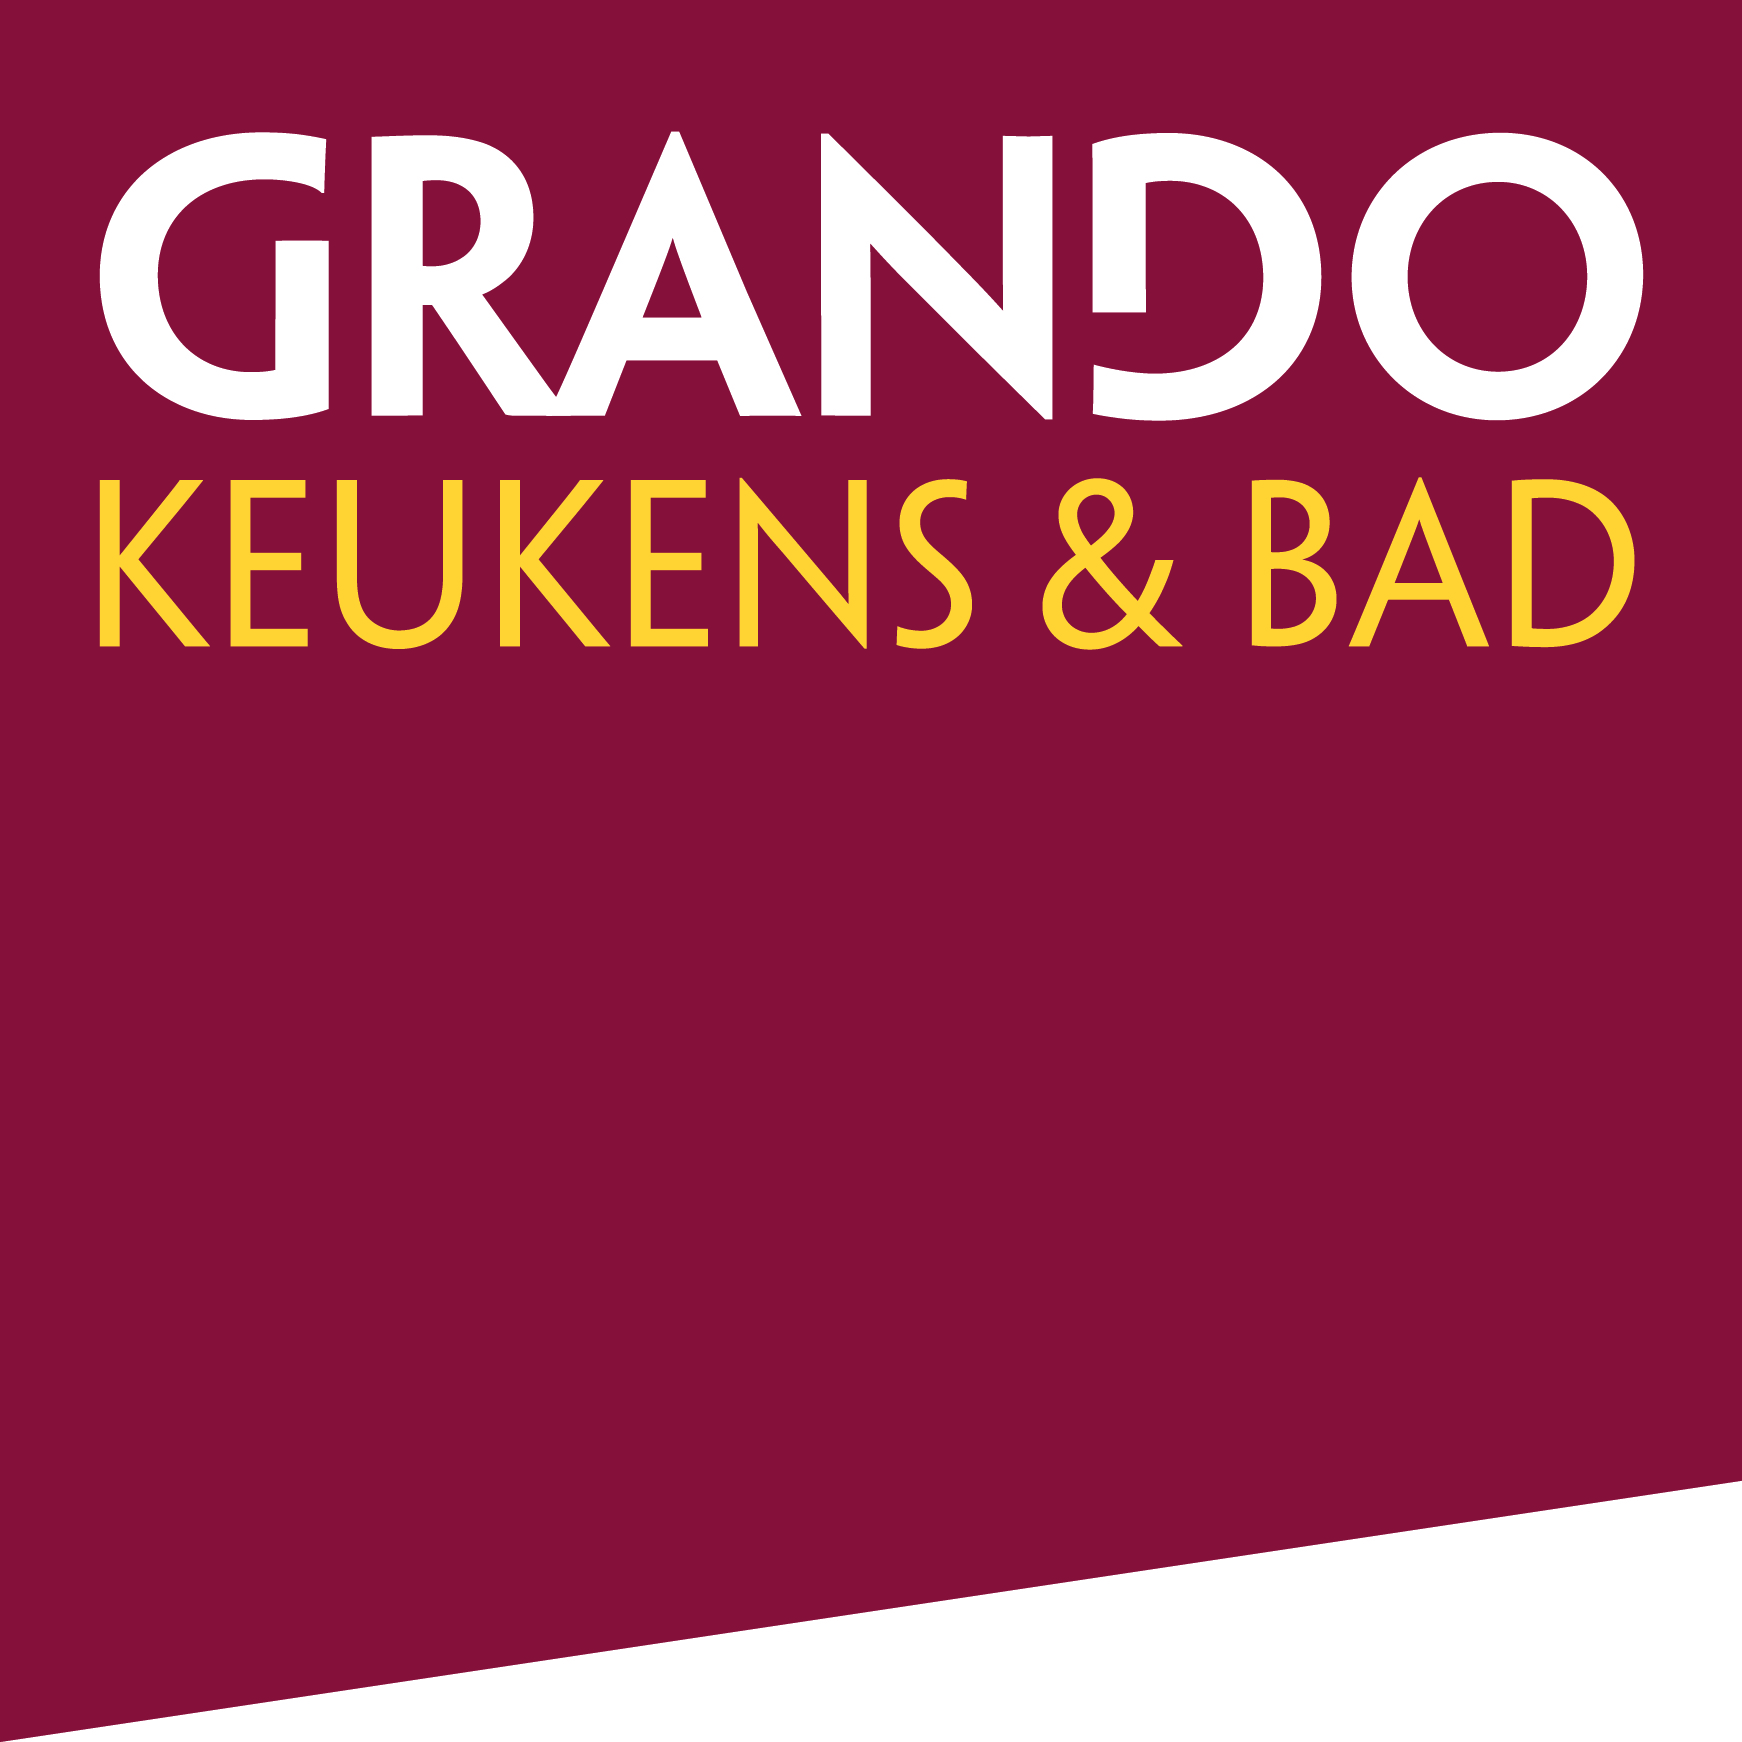 Grando Keukens & Bad Papendrecht